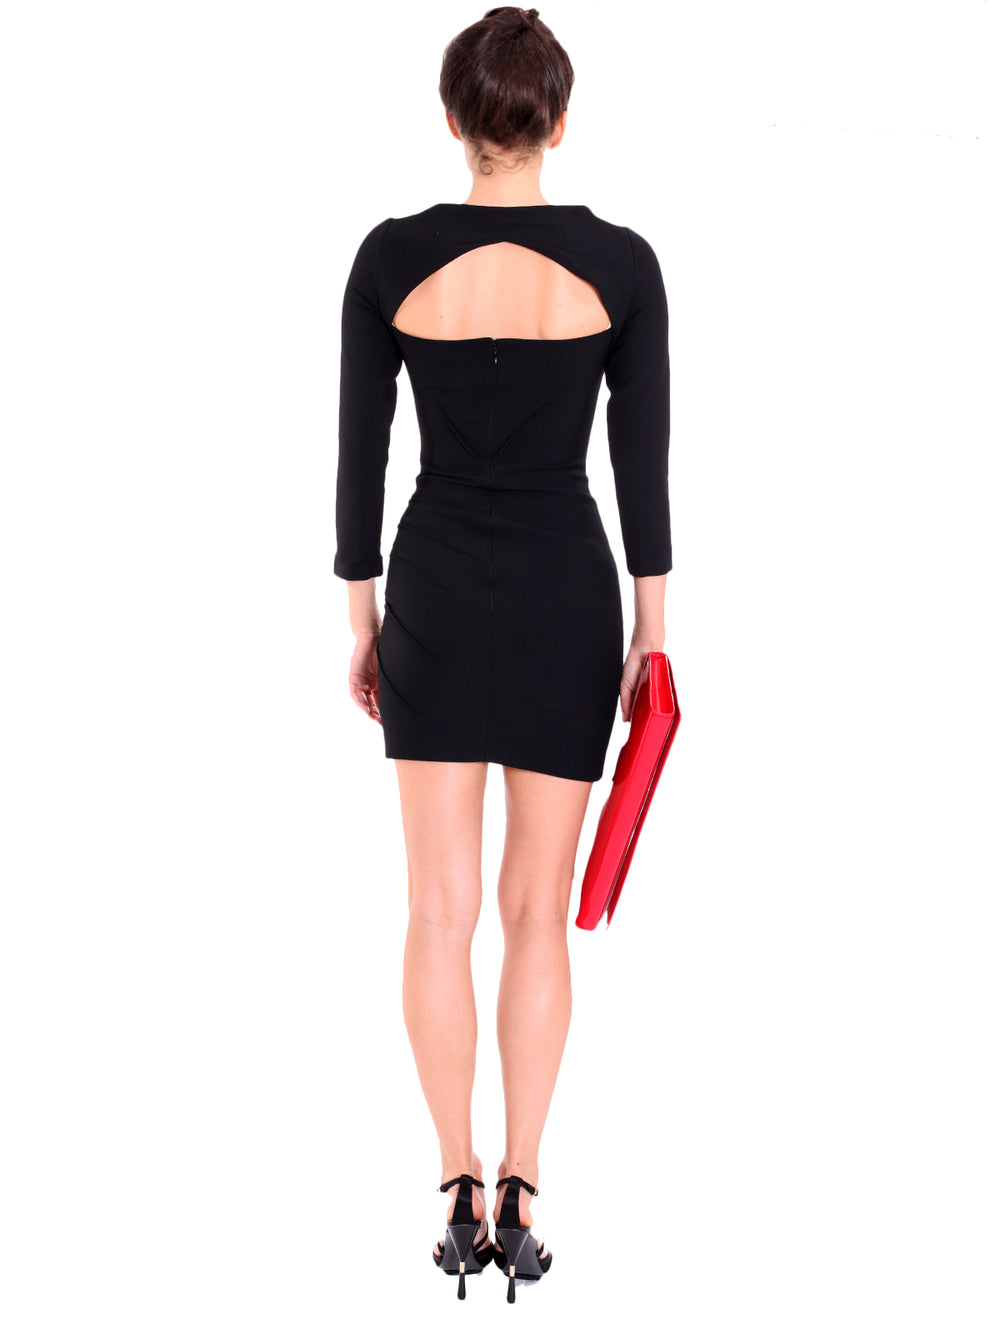 Structured Black Mini Dress, VERSACE - elilhaam.com